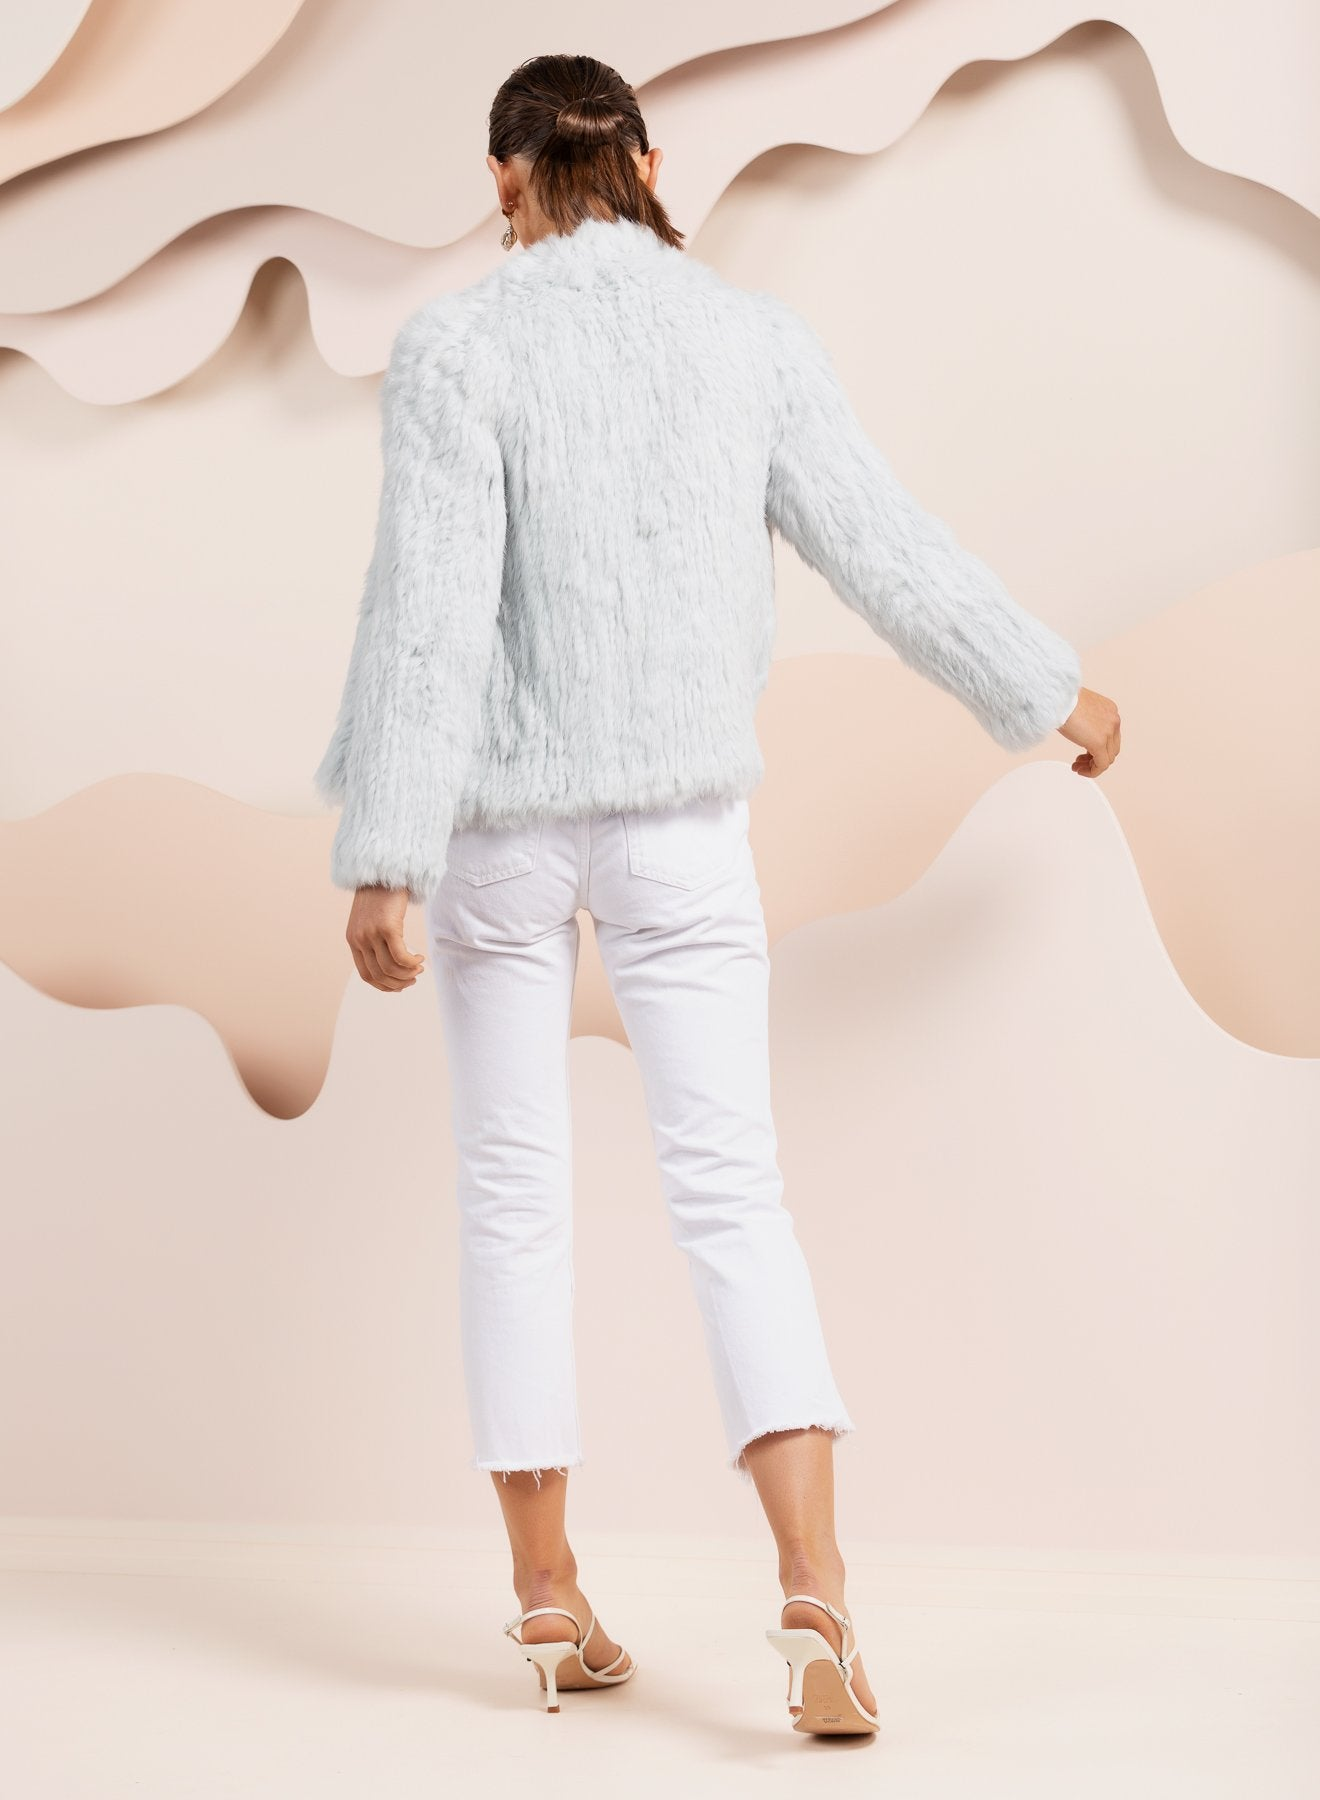 Valencia Pale Blue Fur Jacket *Pre-Order 12-14 Days